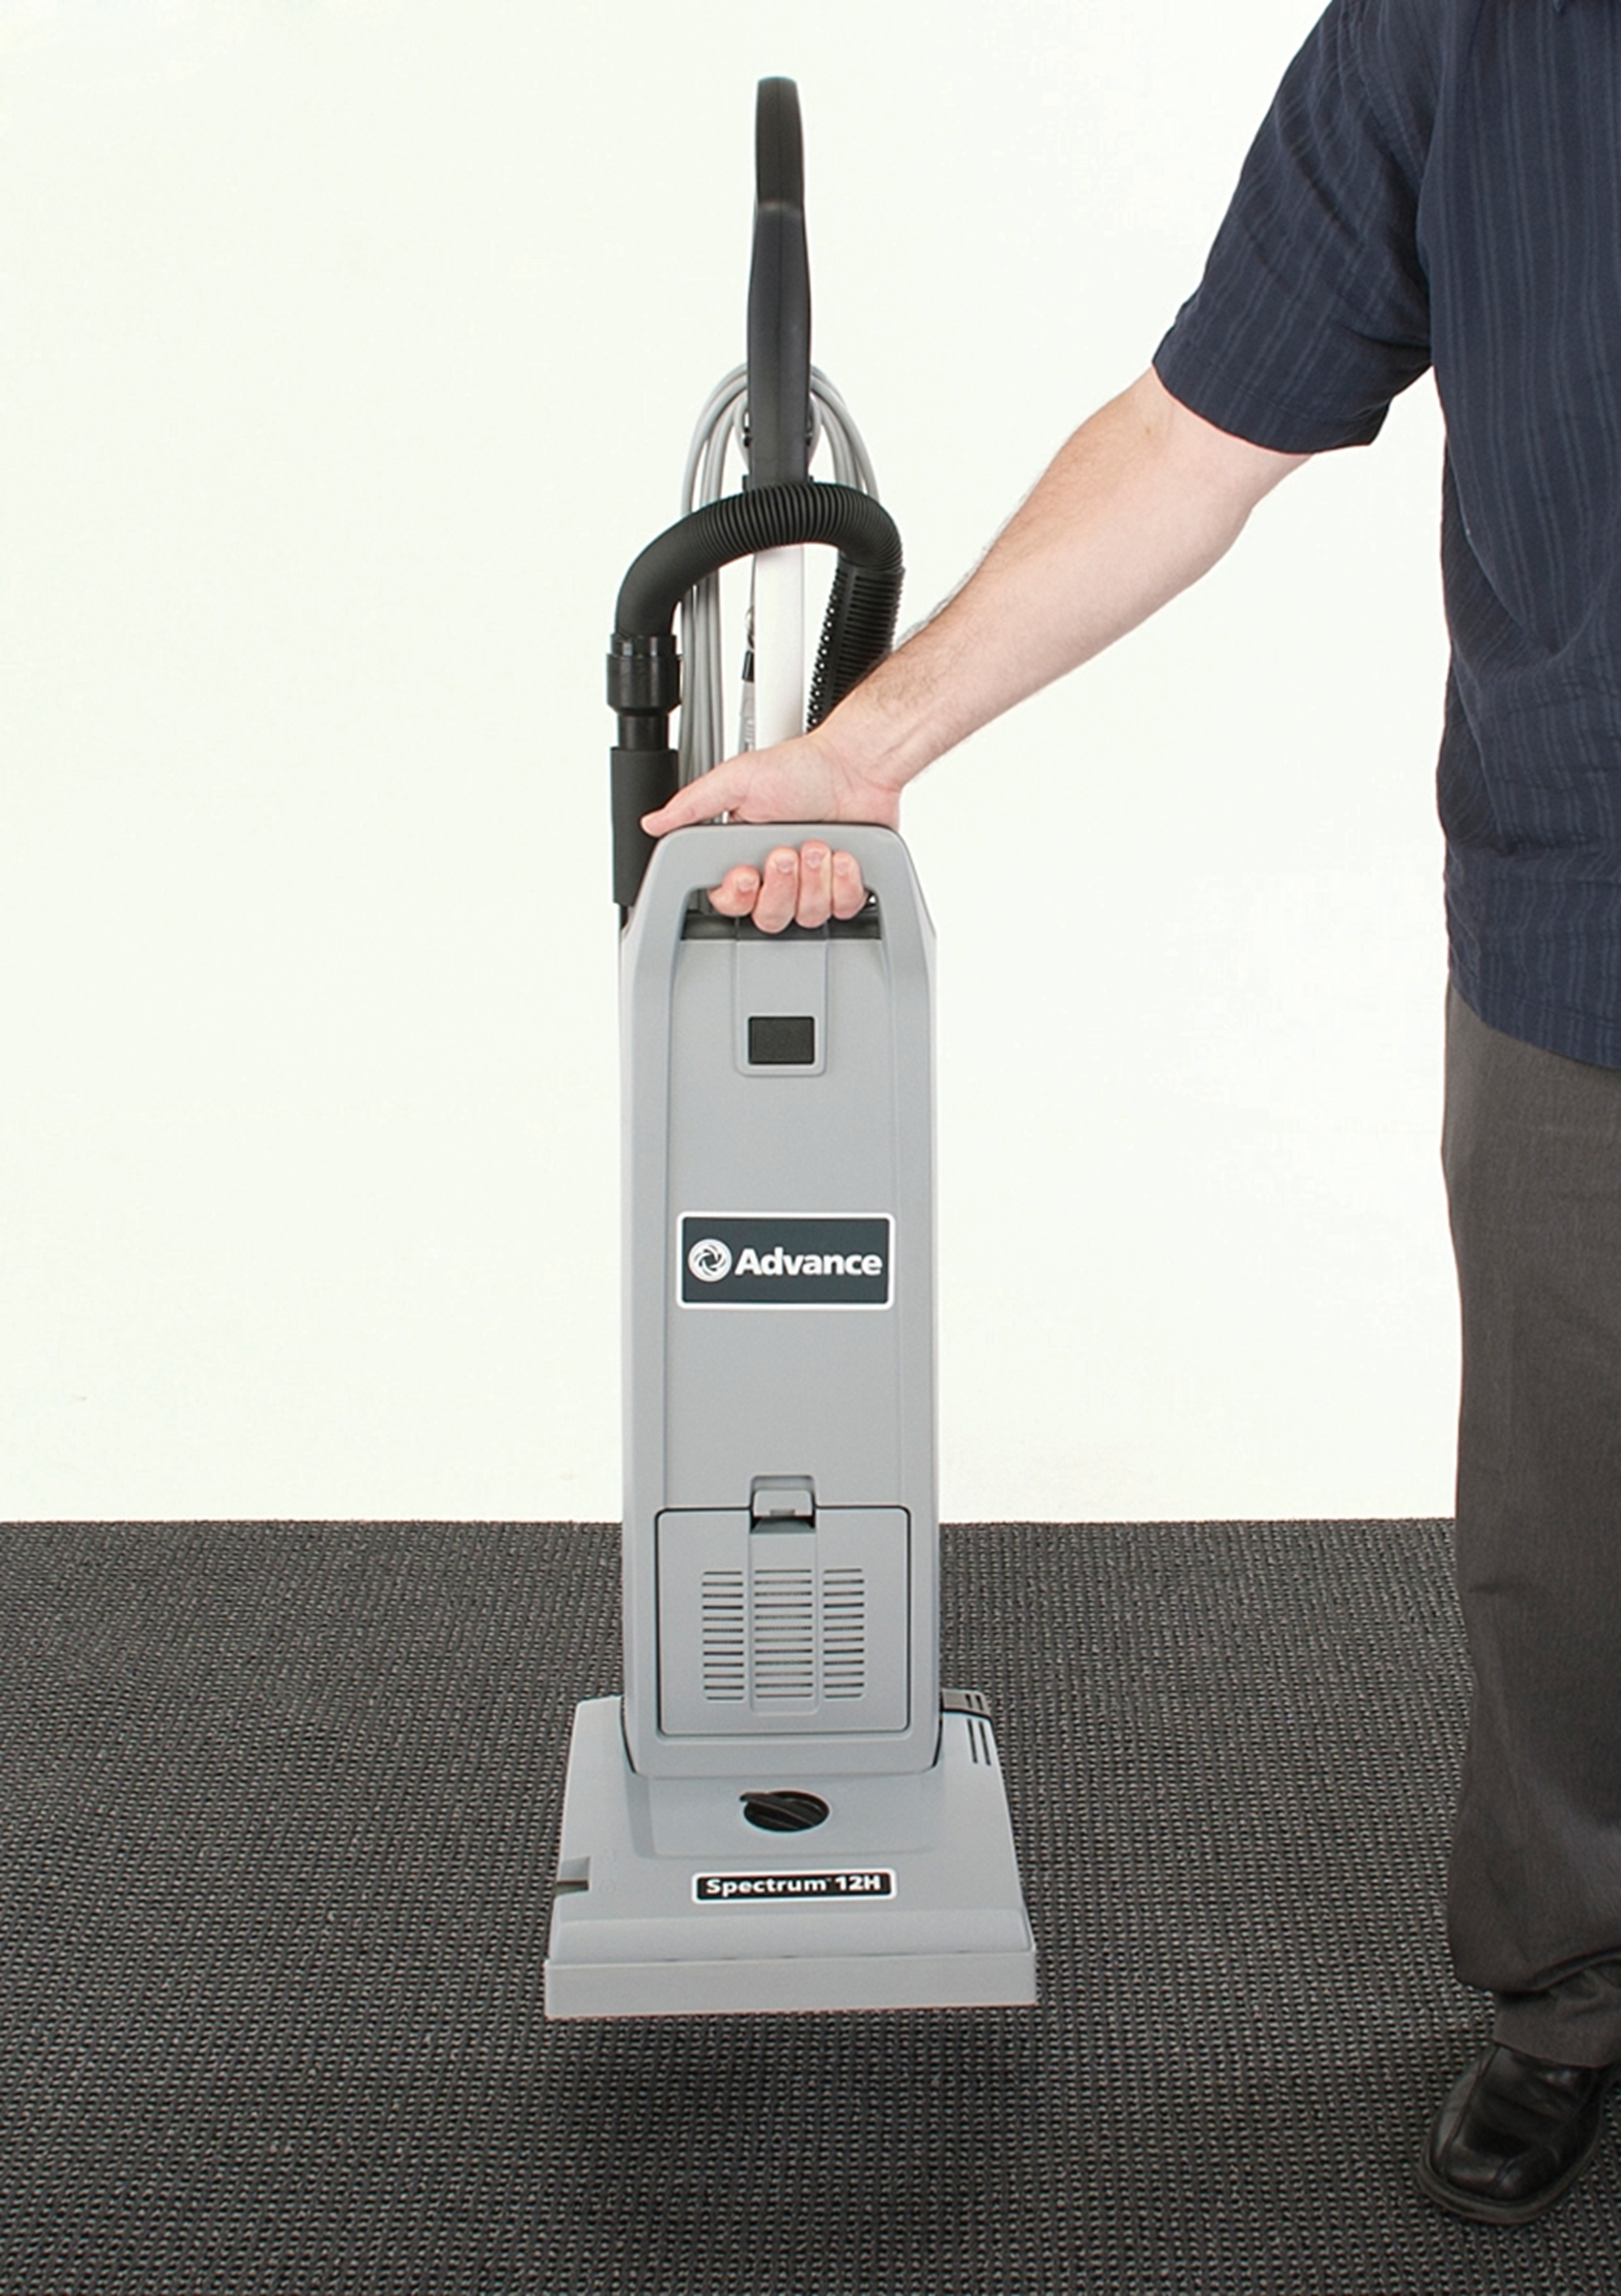 Product, Carpet Cleaning, Commercial Vacuum Cleaners, Upright Vacuum Cleaners, Nilfisk, ADVANCE SPECTRUM 12P